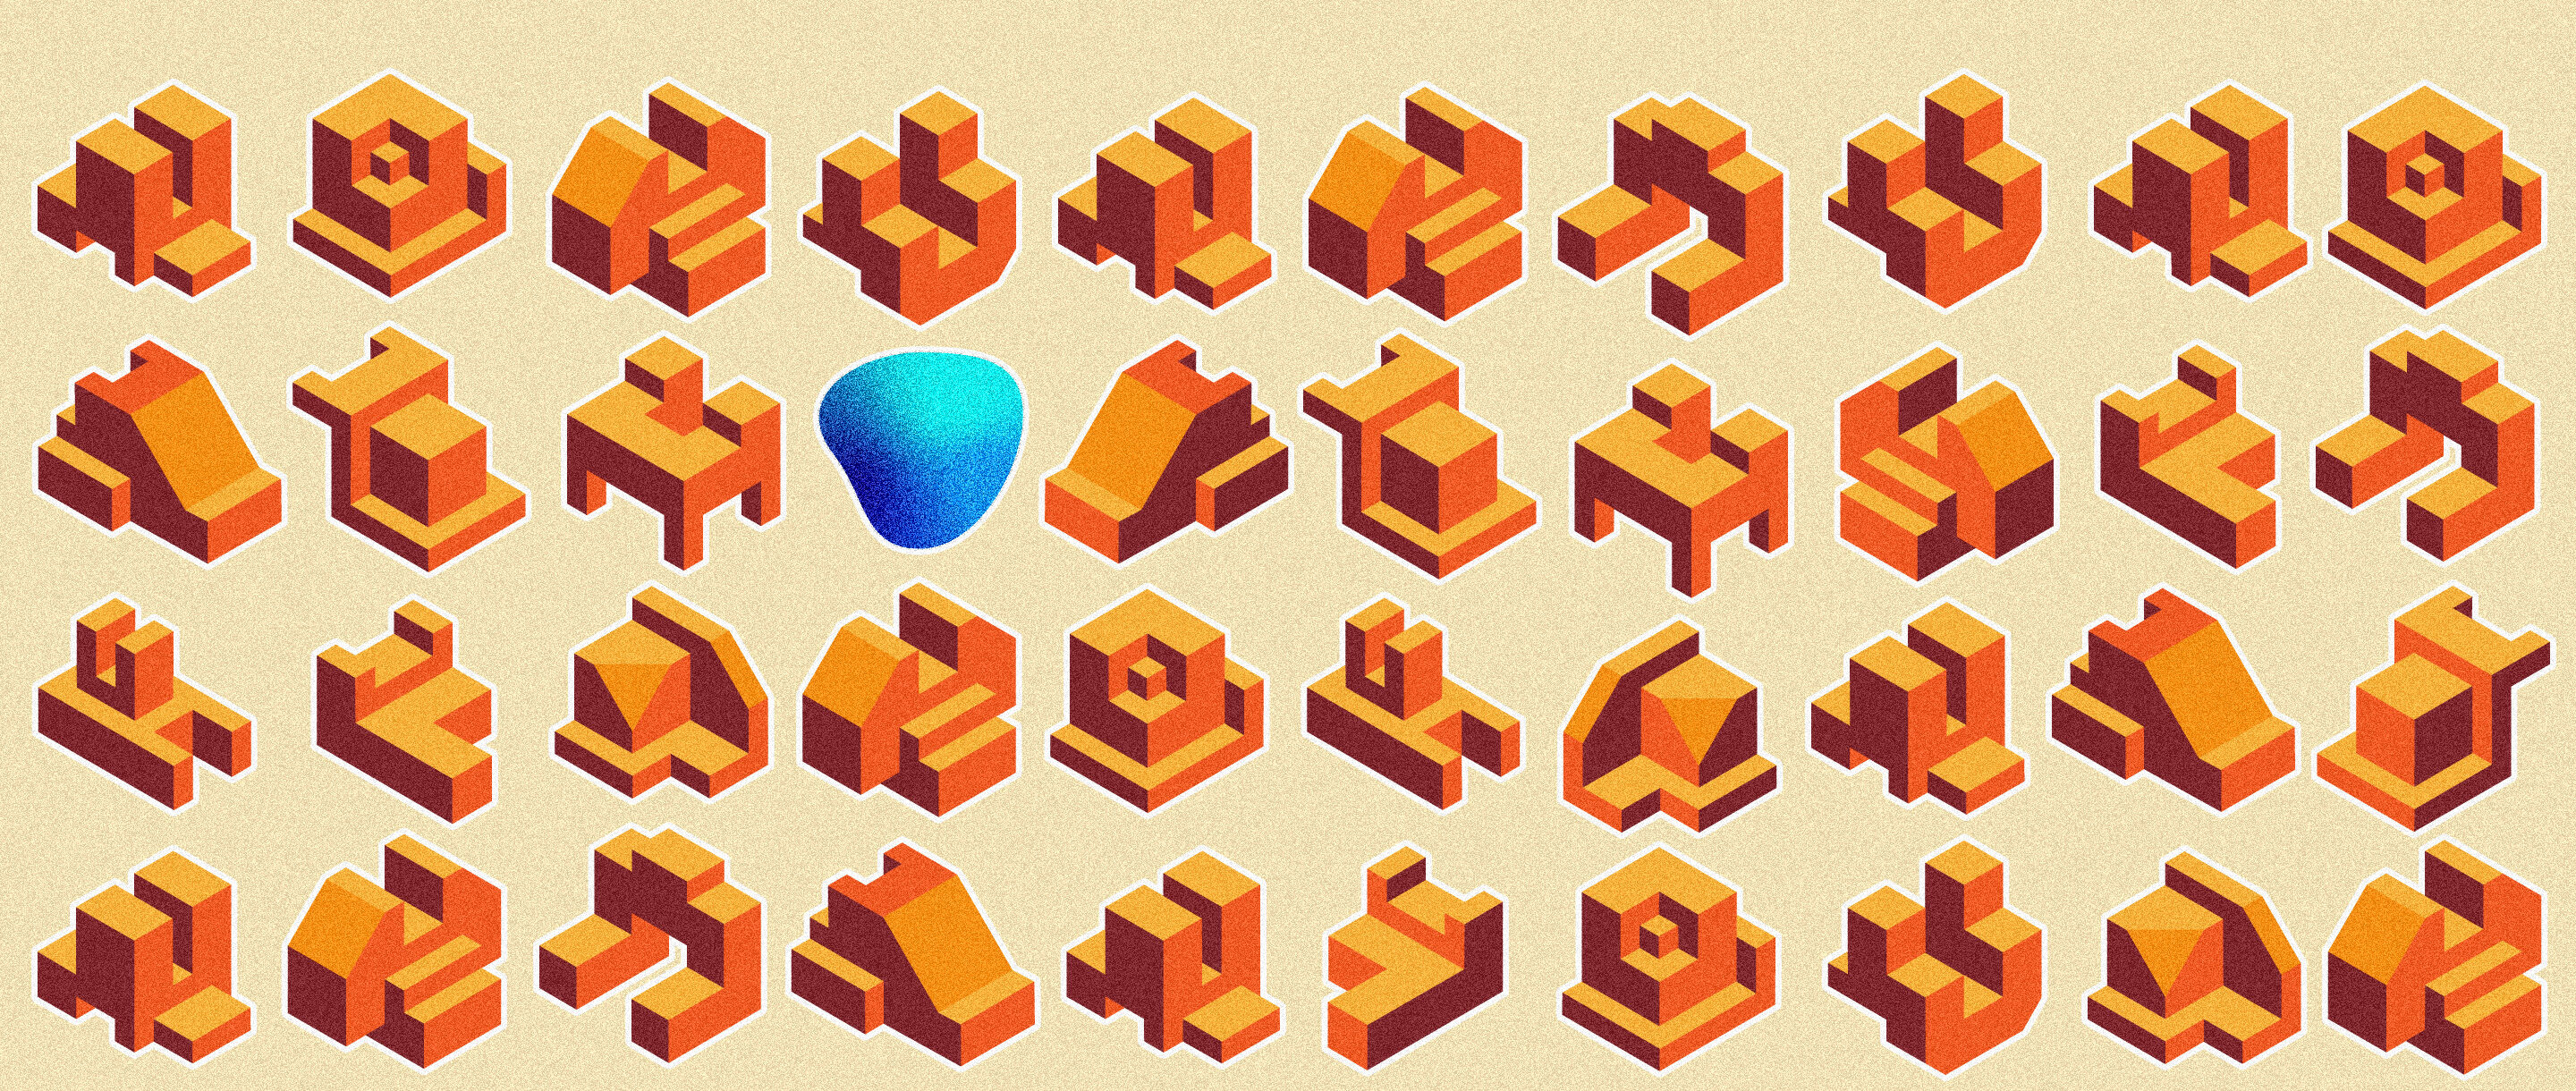 An array of blocky orange objects of all different shapes, with a single blue blob in one of the rows and columns.